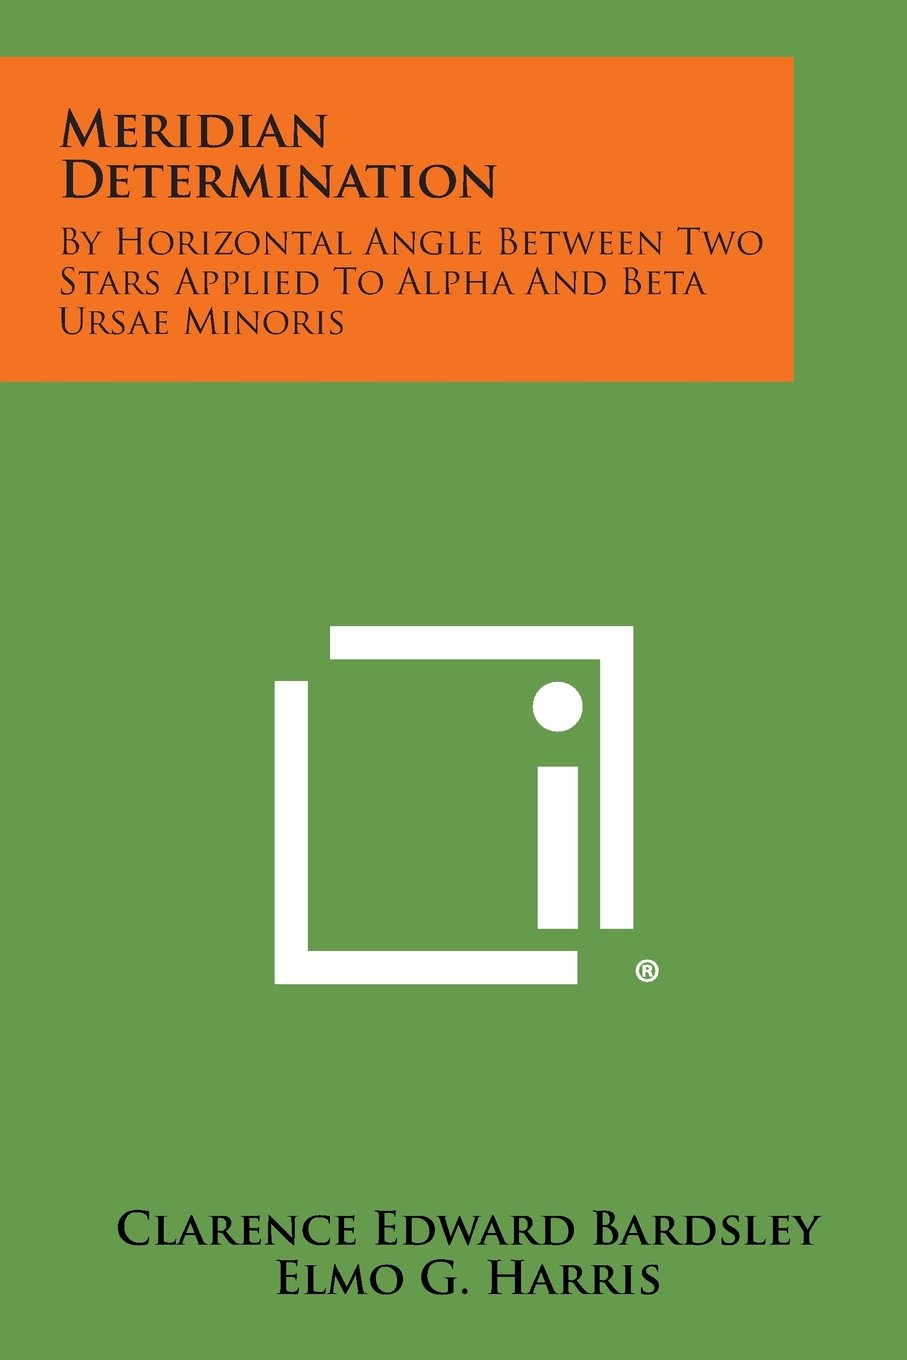 Download Meridian Determination: By Horizontal Angle Between Two Stars Applied to Alpha and Beta Ursae Minoris pdf epub